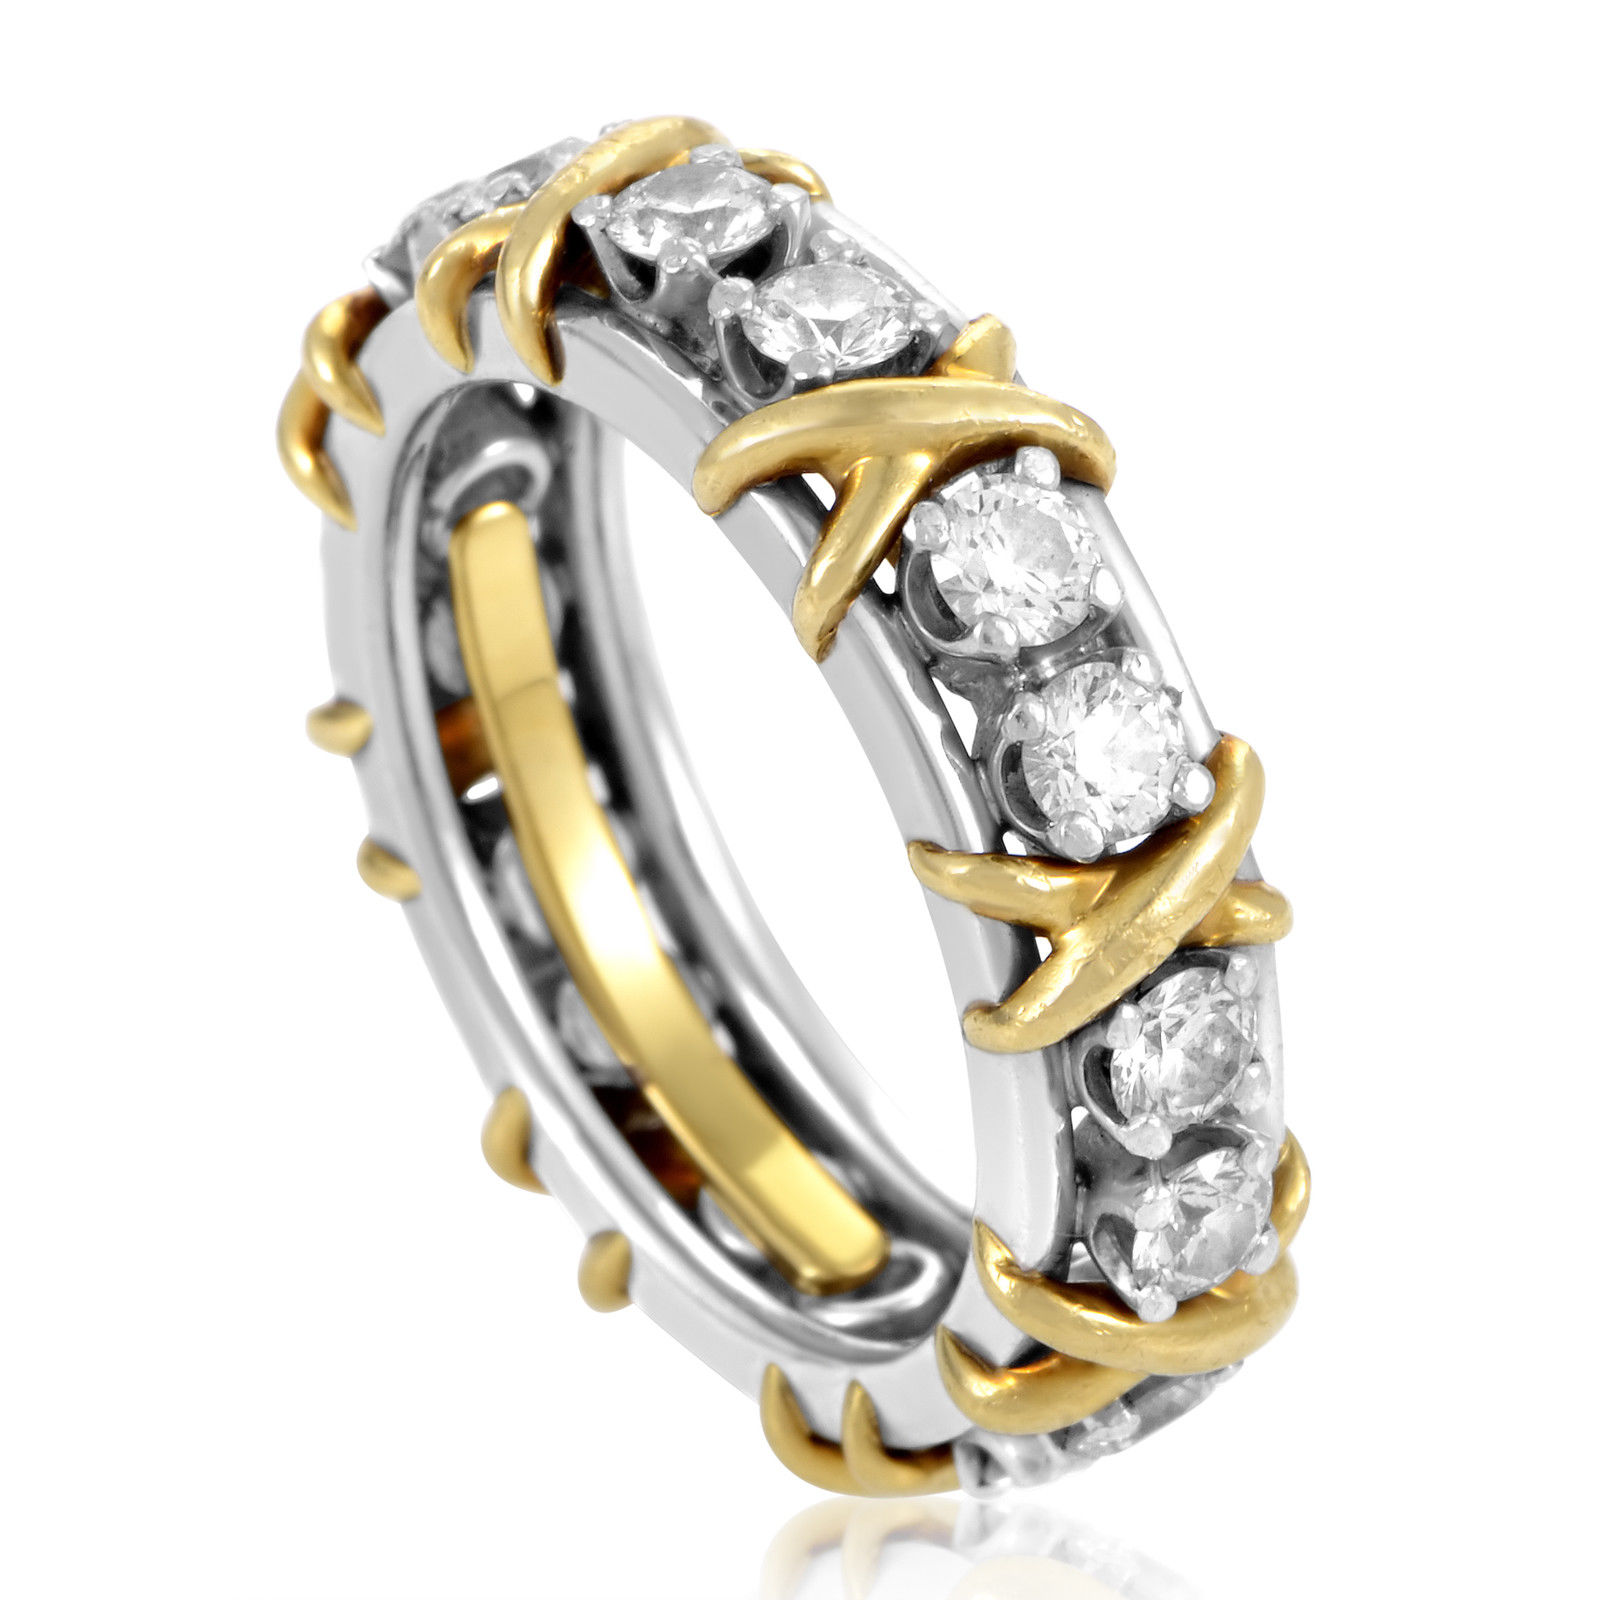 Tiffany & Co. Schlumberger Platinum & 18K Yellow Gold Diamond Eternity Band Ring.